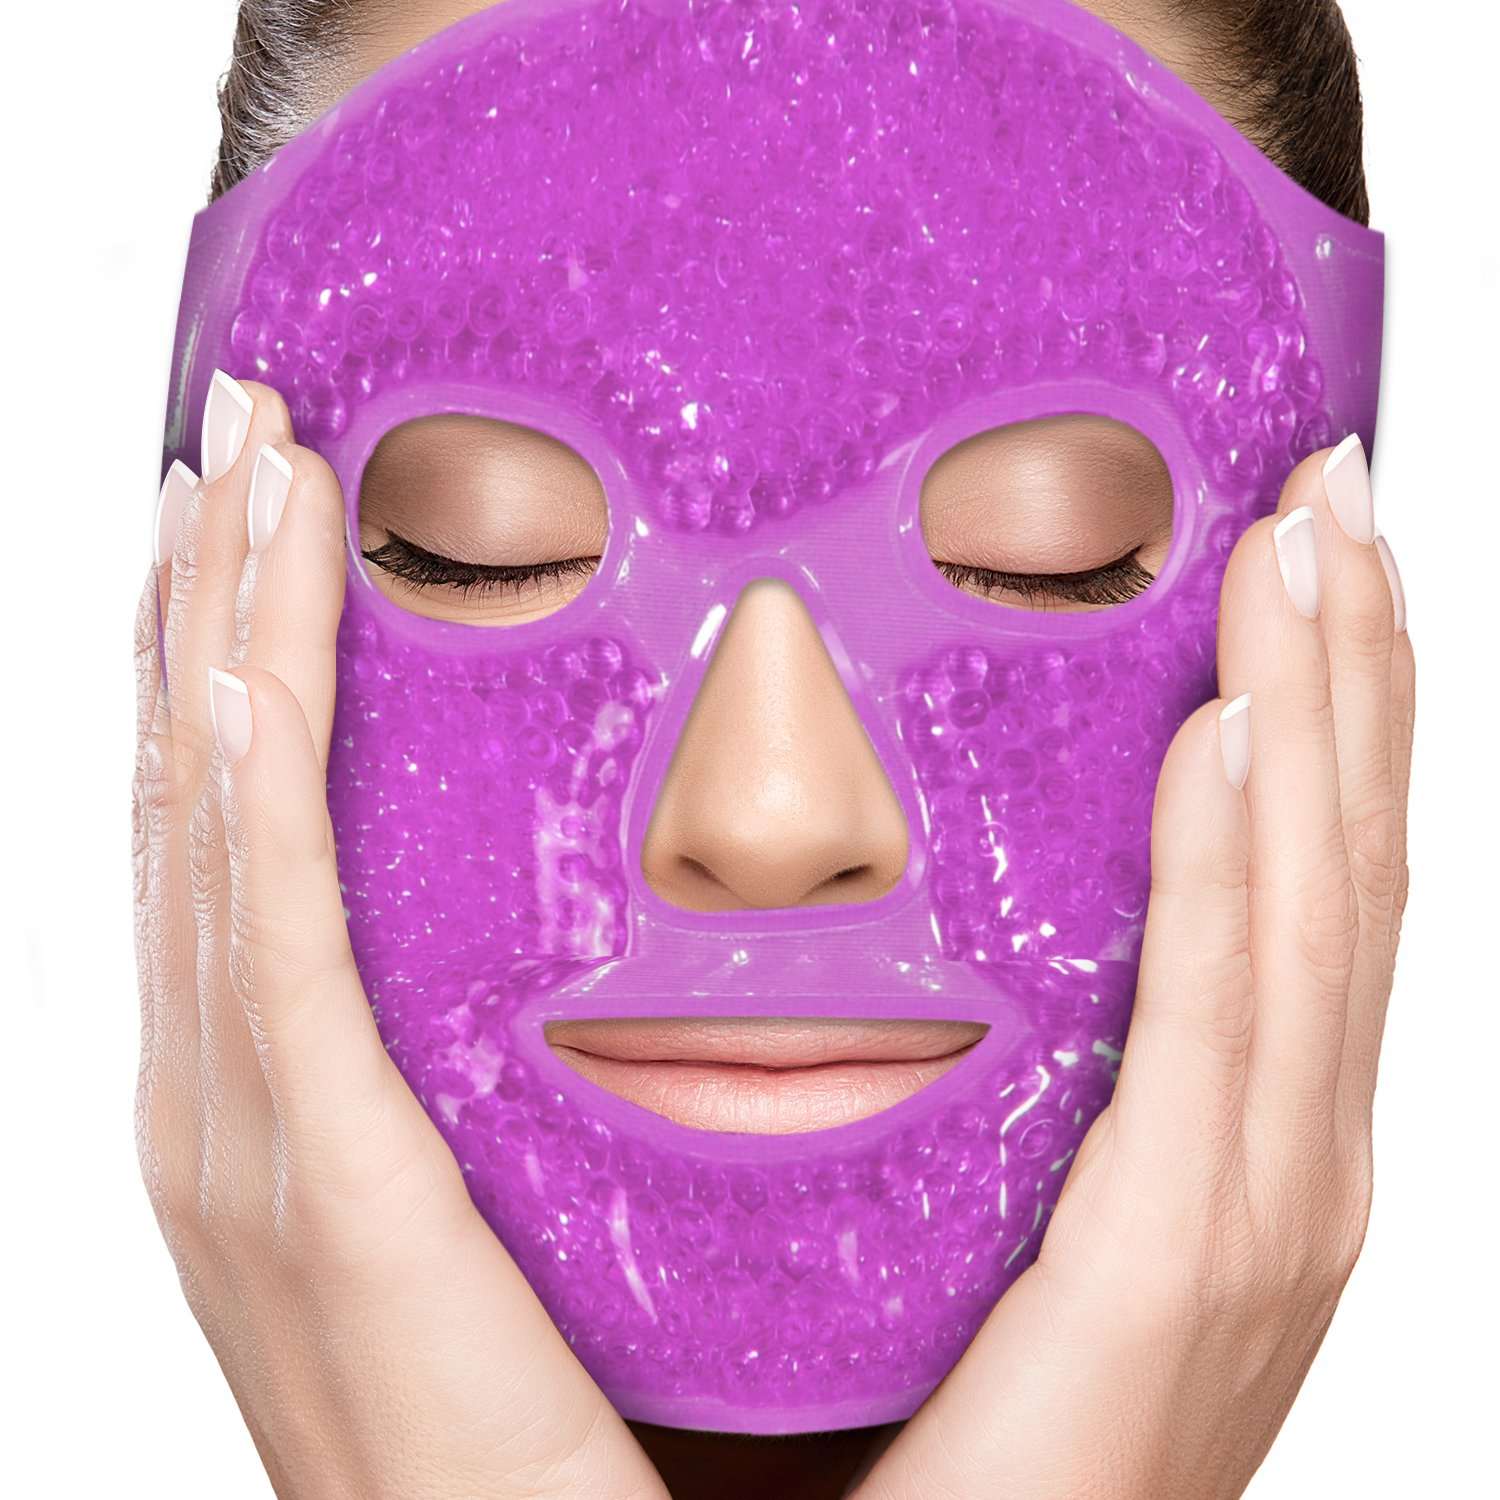 PerfeCore Facial Mask - Get Rid of Puffy Eyes - Migraine Relief, Sleeping, Travel Therapeutic Hot Cold Compress Pack - Gel Beads, Spa Therapy Wrap for Sinus Pressure Face Puffiness Headaches - Purple